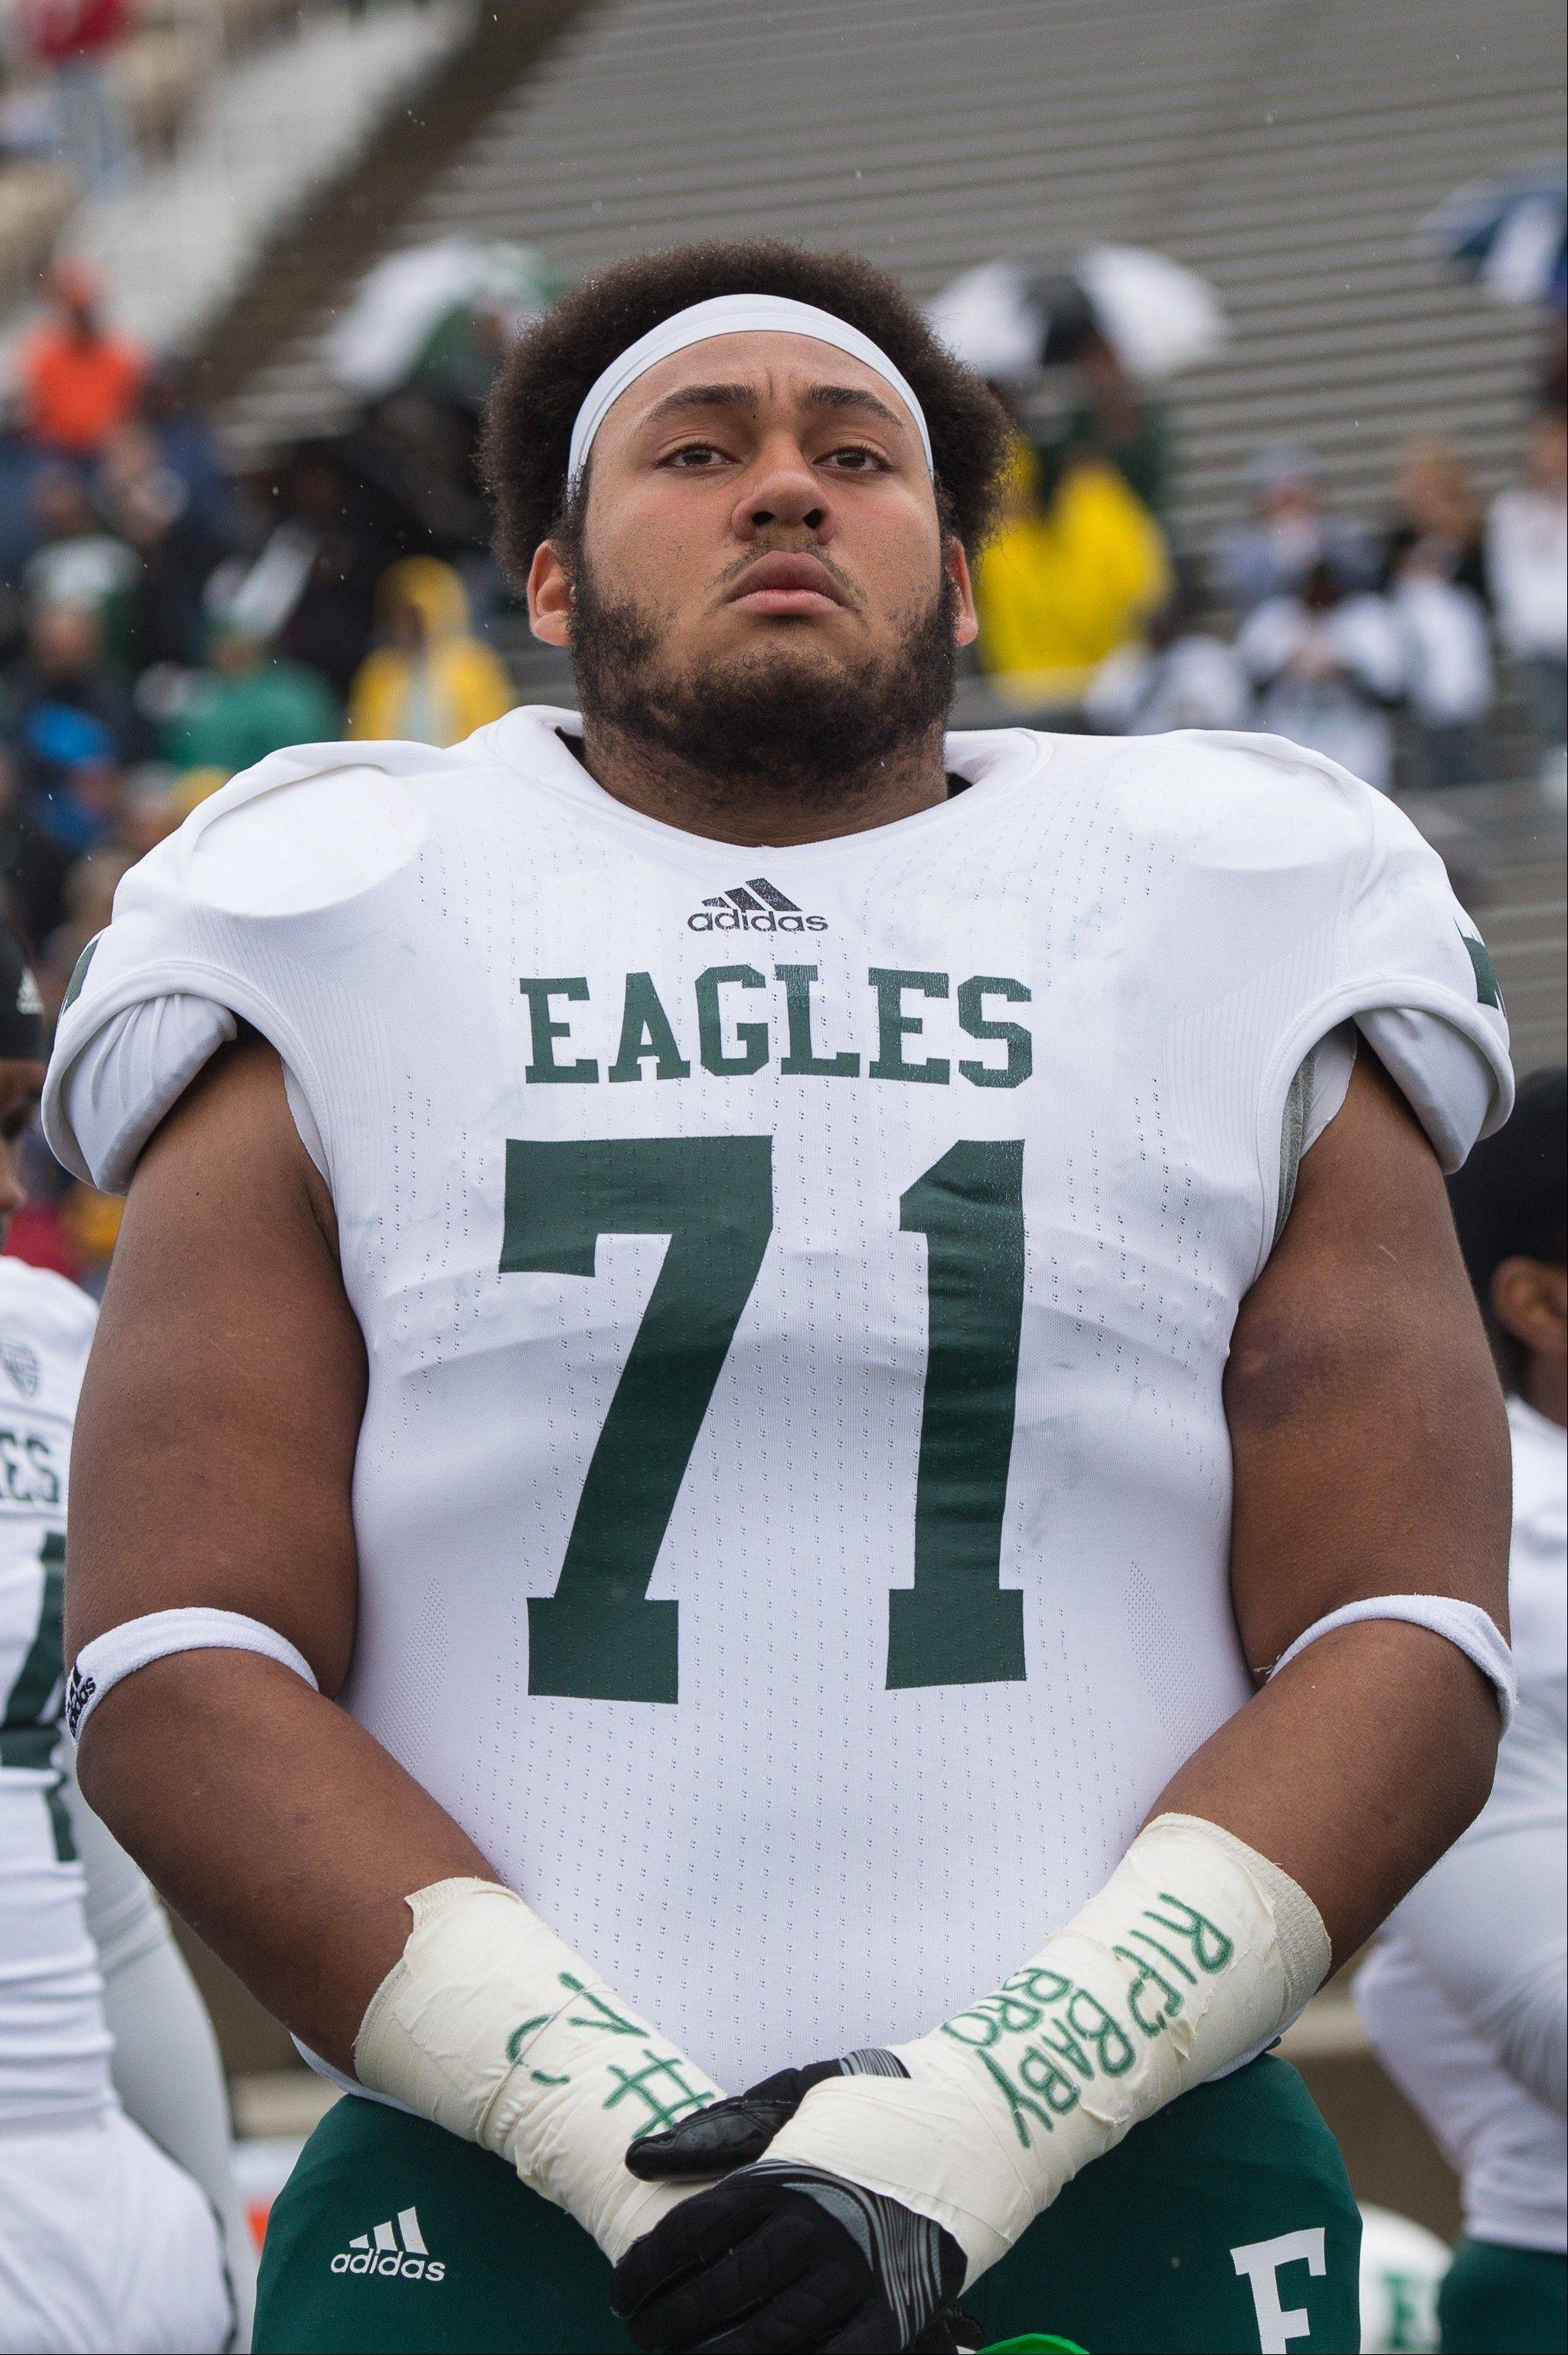 Eastern Michigan University's Darien Terrell looks out on to the field after a moment of silence to honor Demarius Reed.